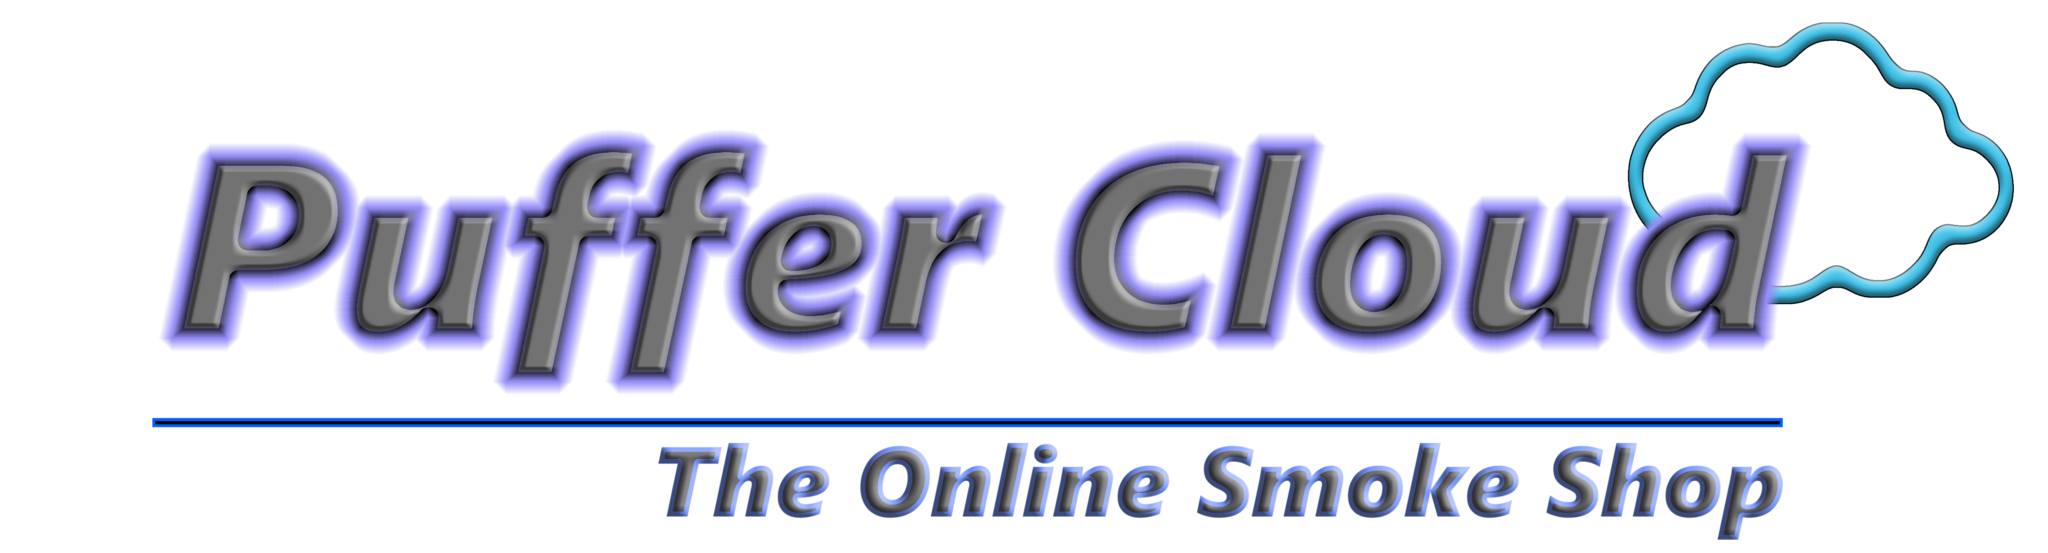 www.PufferCloud.com  - The Online Smoke Shop